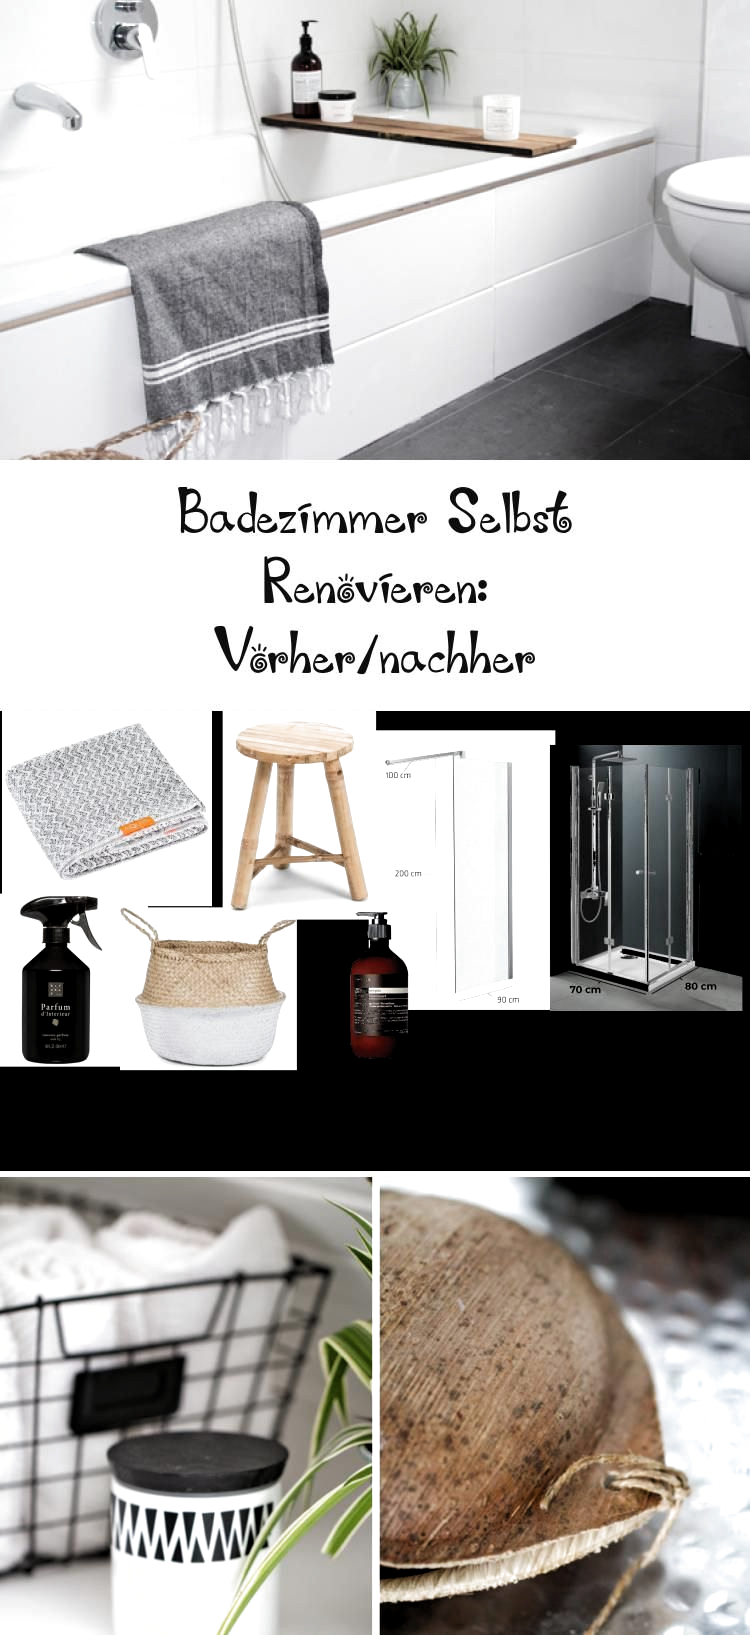 Badezimmer Wellnessoase Bad Deko Bad Deko Diy Bad Dekoration Bad Dekoration Diy Bad Dekoration Pflanzen Bad Dekor In 2020 Bad Deko Badezimmer Dekor Diy Badezimmer